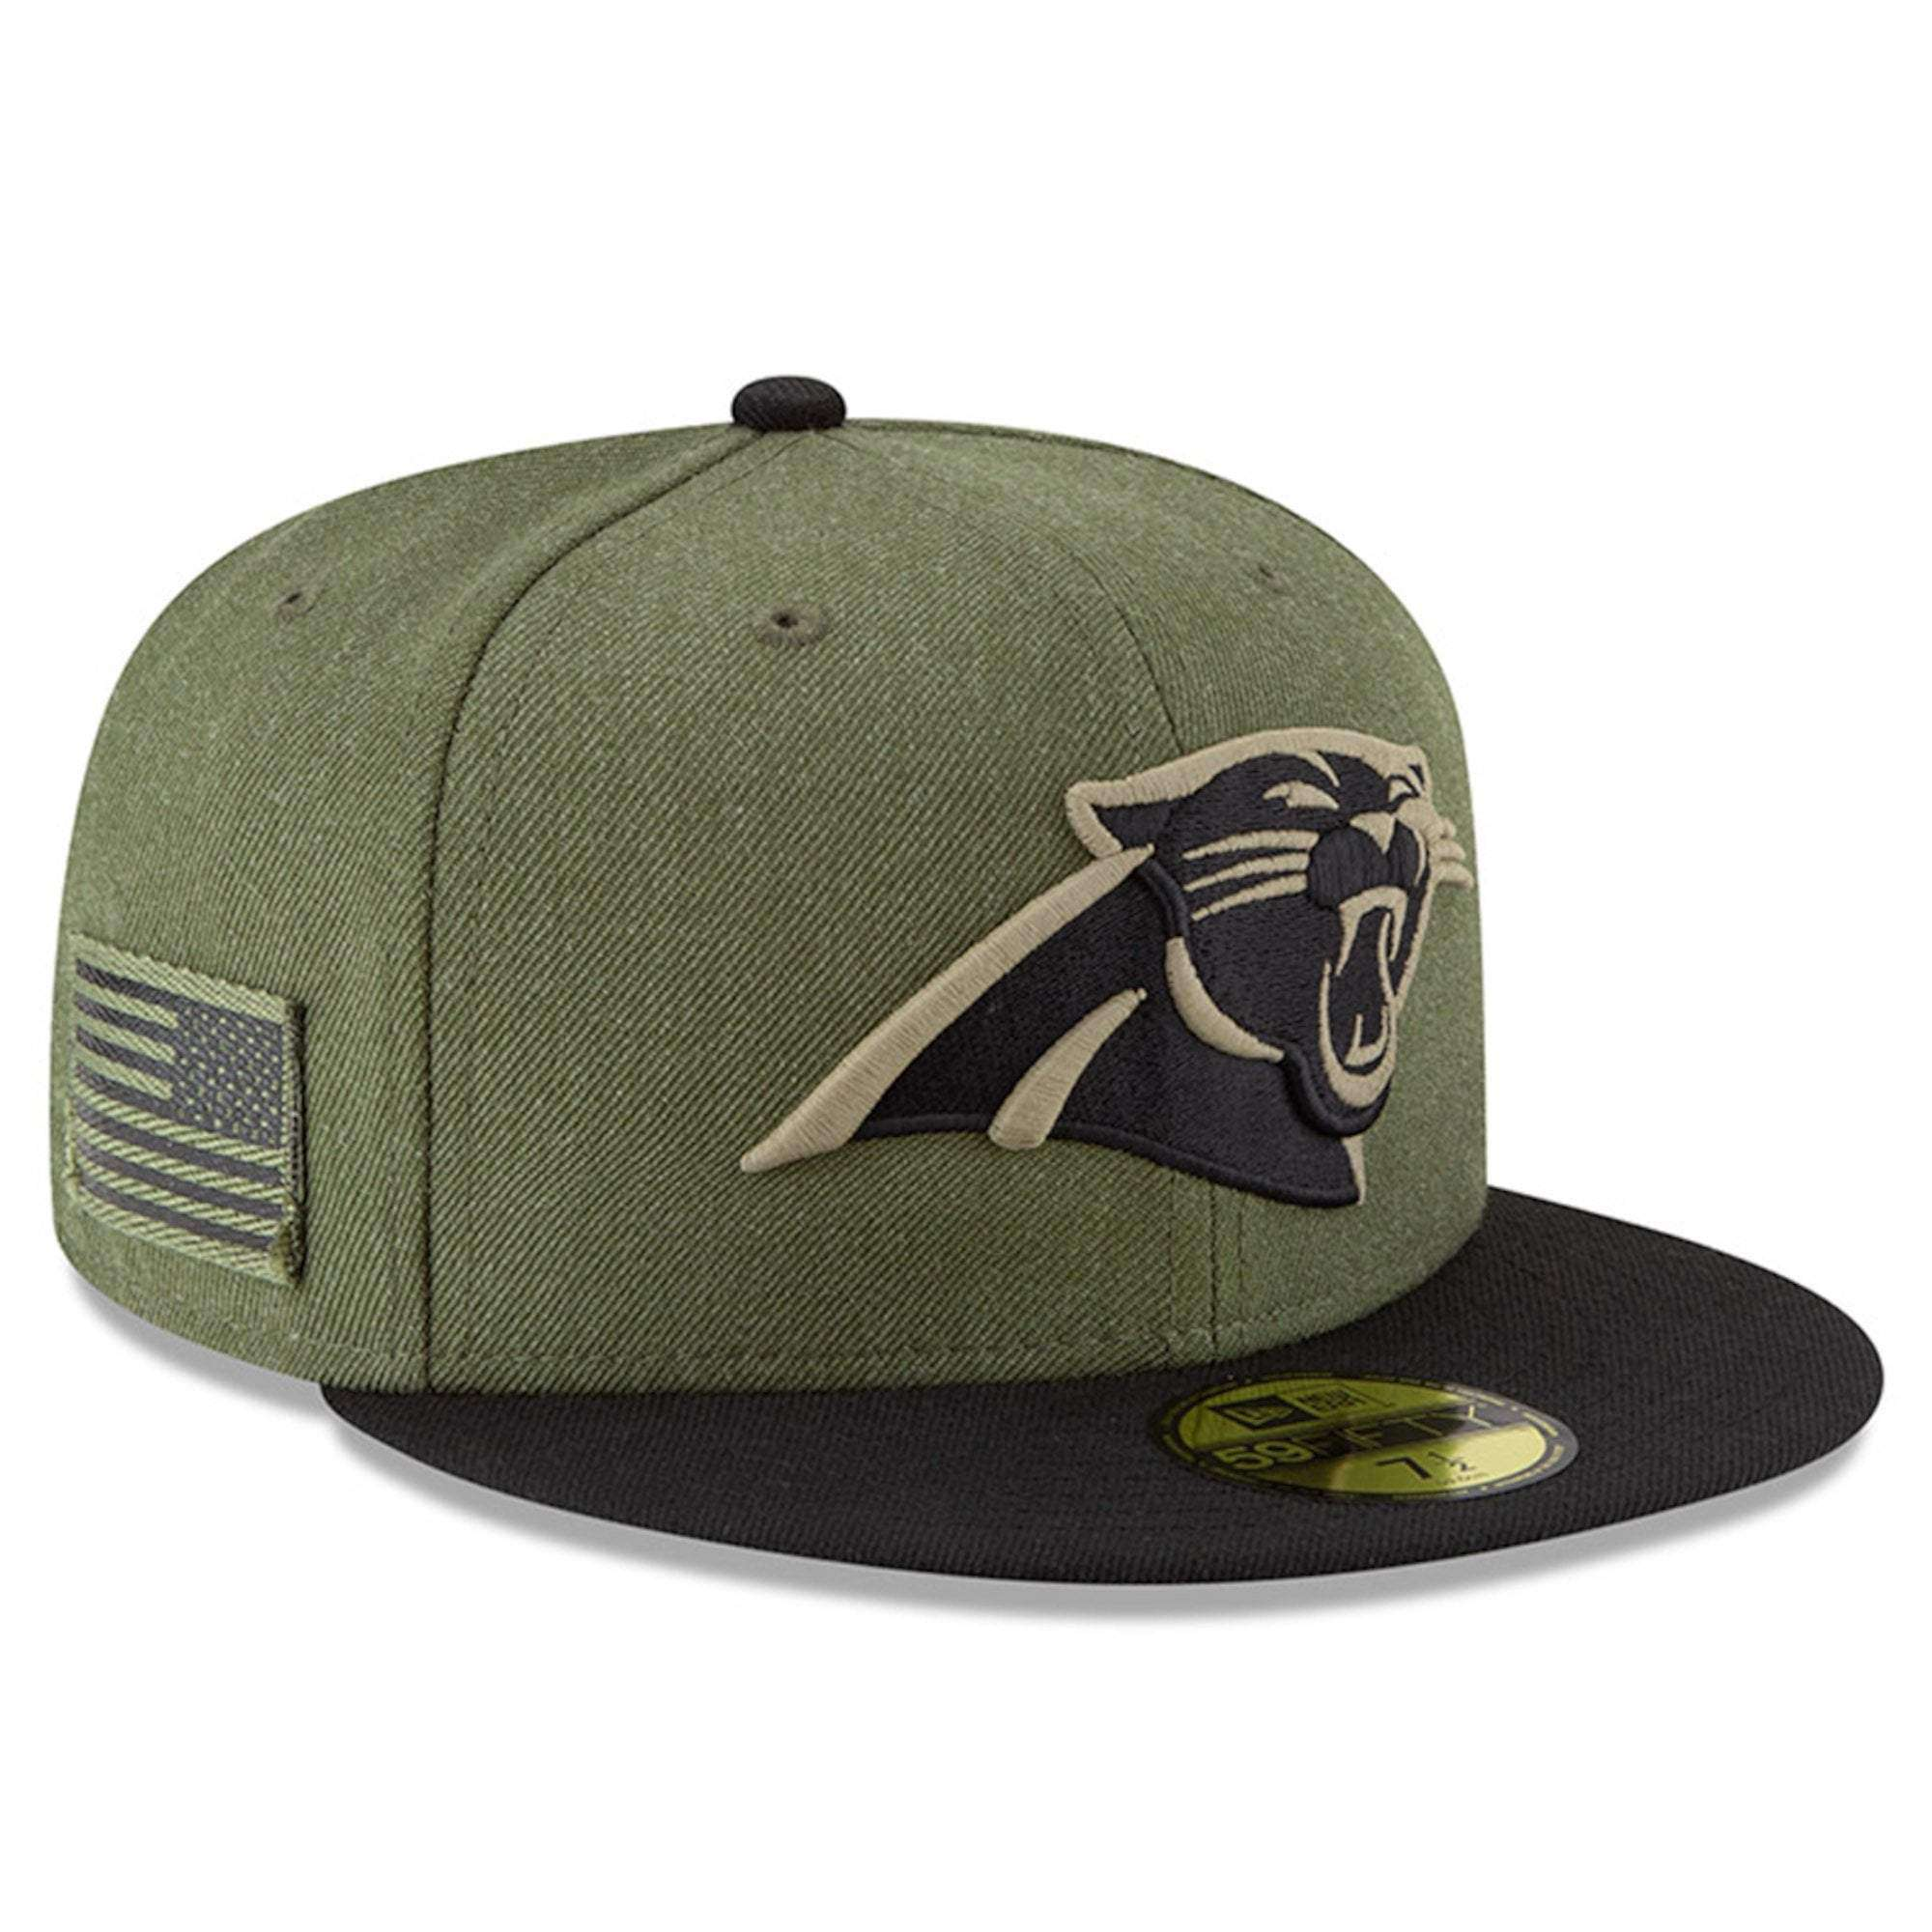 ... coupon code carolina panthers new era nfl 2018 salute to service  59fifty fitted hat olive a5a1d a8e374b4ab1a